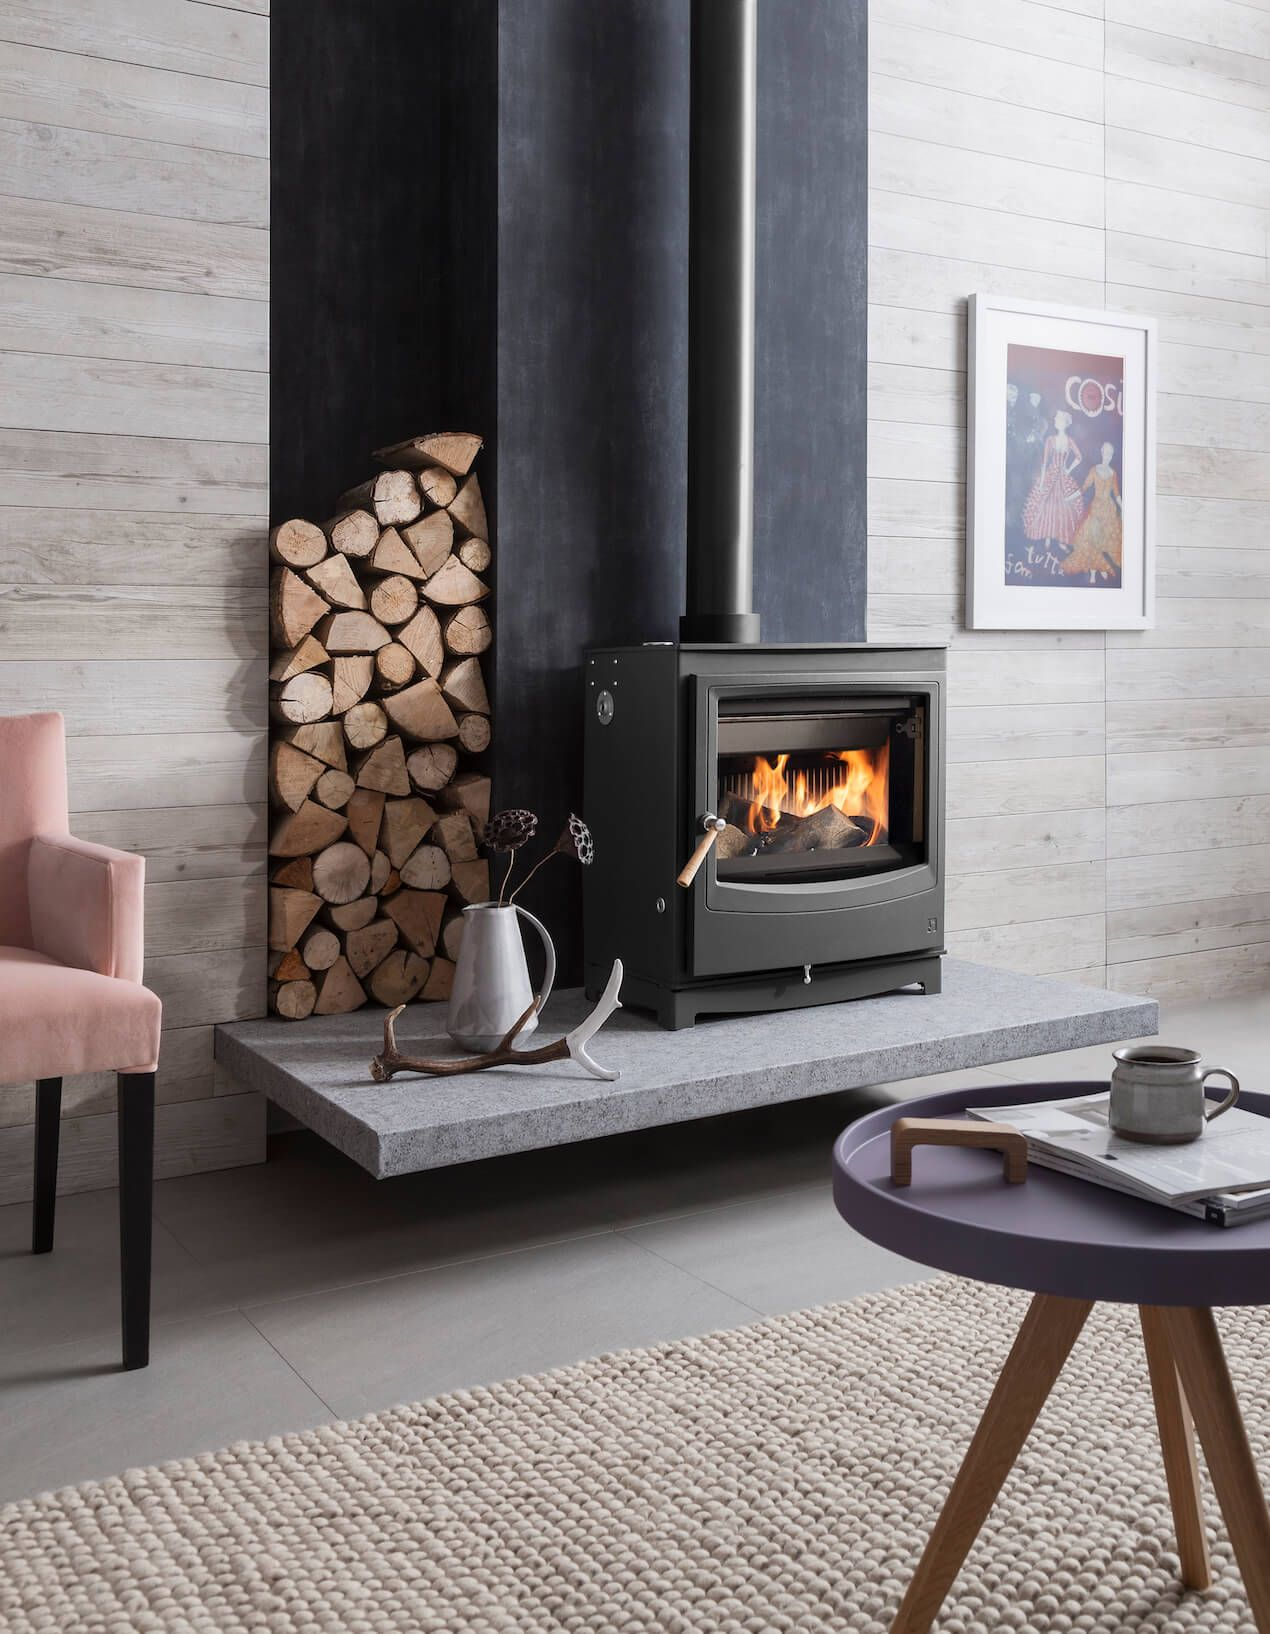 7 Festive Fireplace Styling Ideas Welovehome Home Wood Burning Stoves Living Room Freestanding Fireplace Home Fireplace